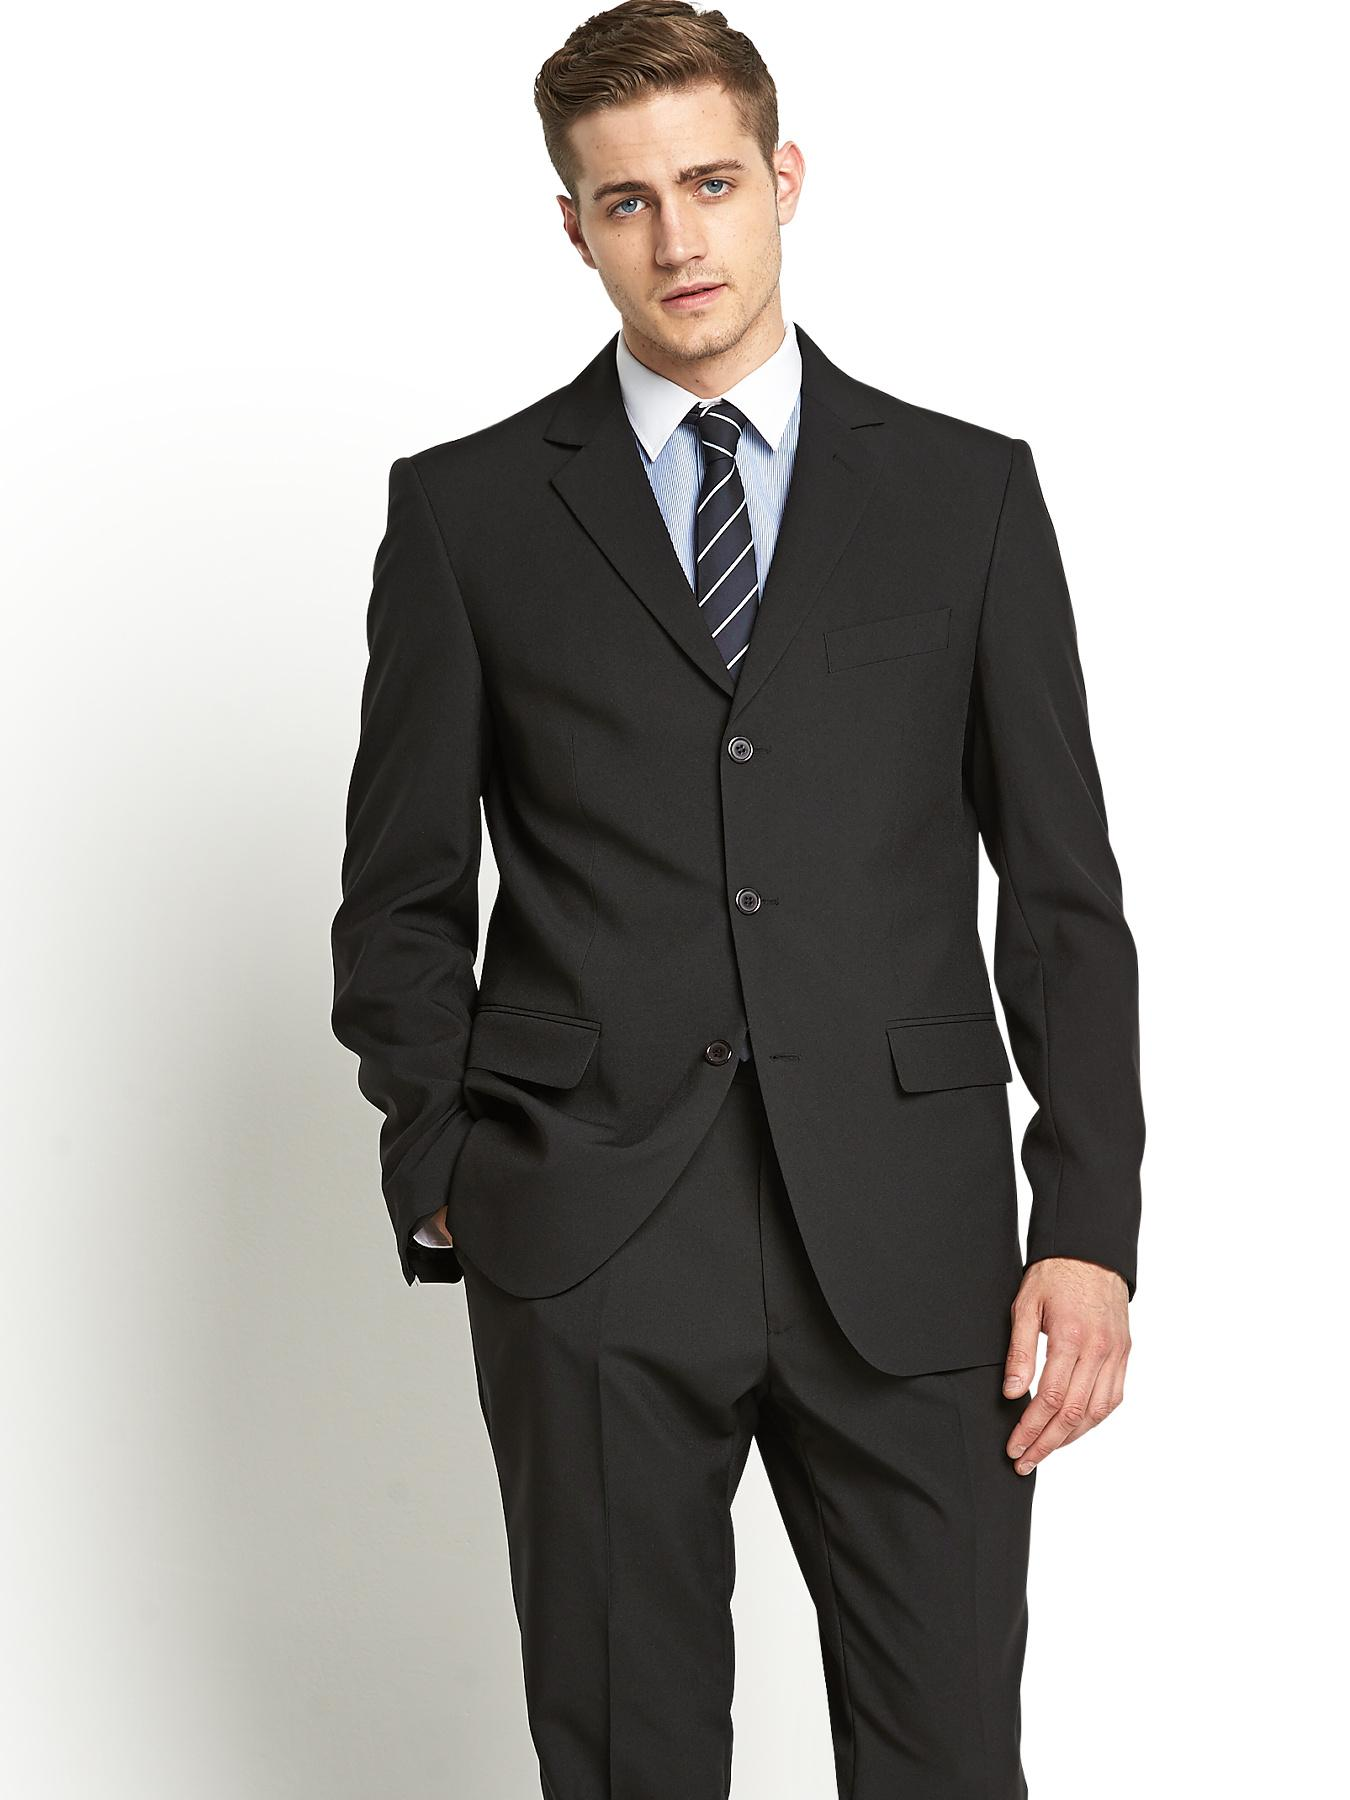 Mens Single Breasted Suit Jacket Regular fit, Black